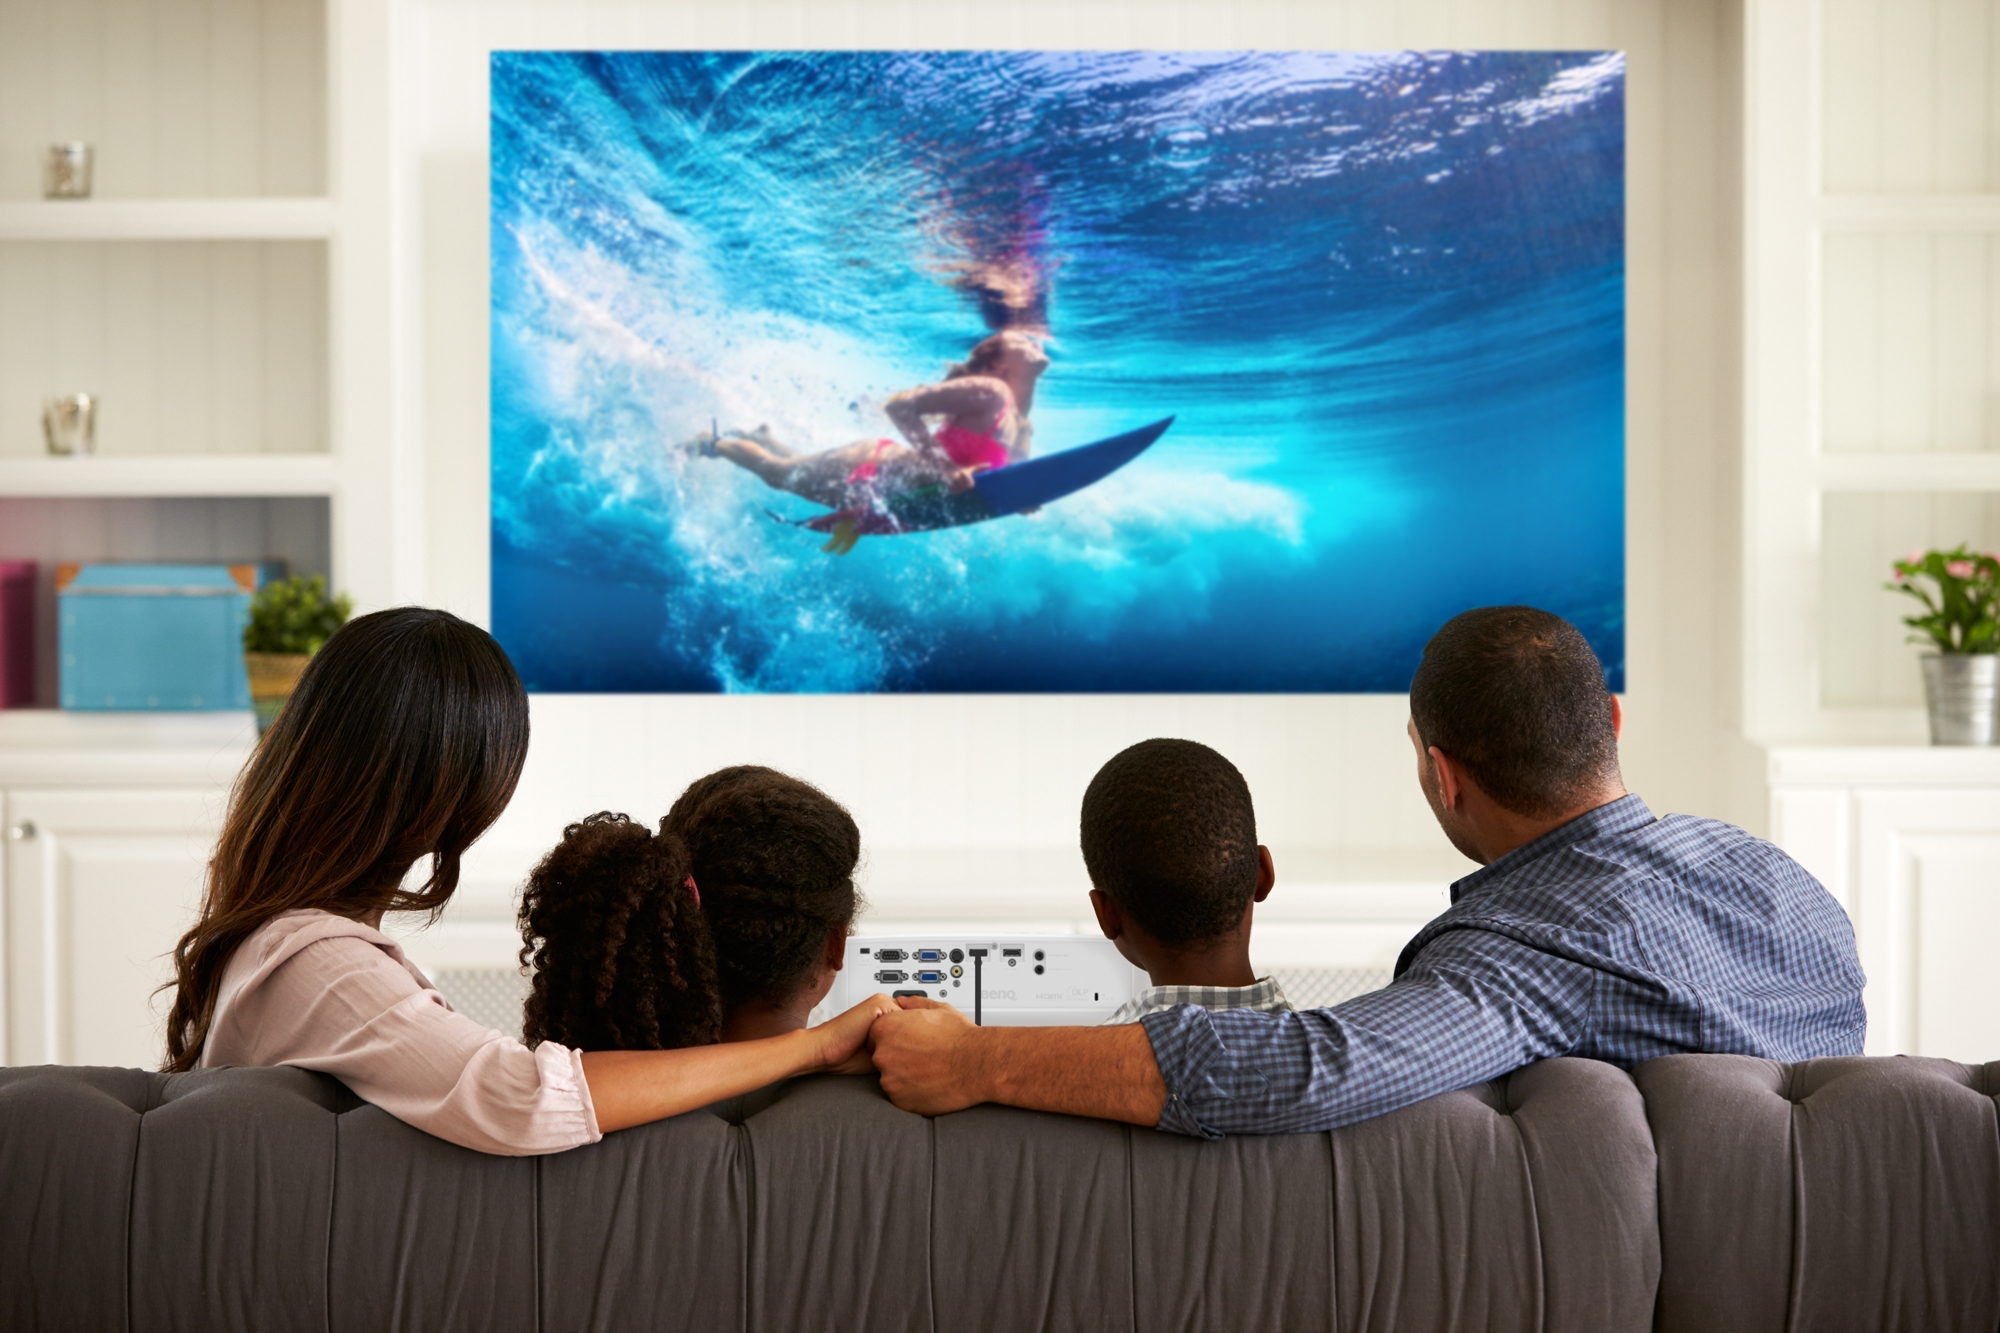 BenQ MH530FHD Big and Bright Picture